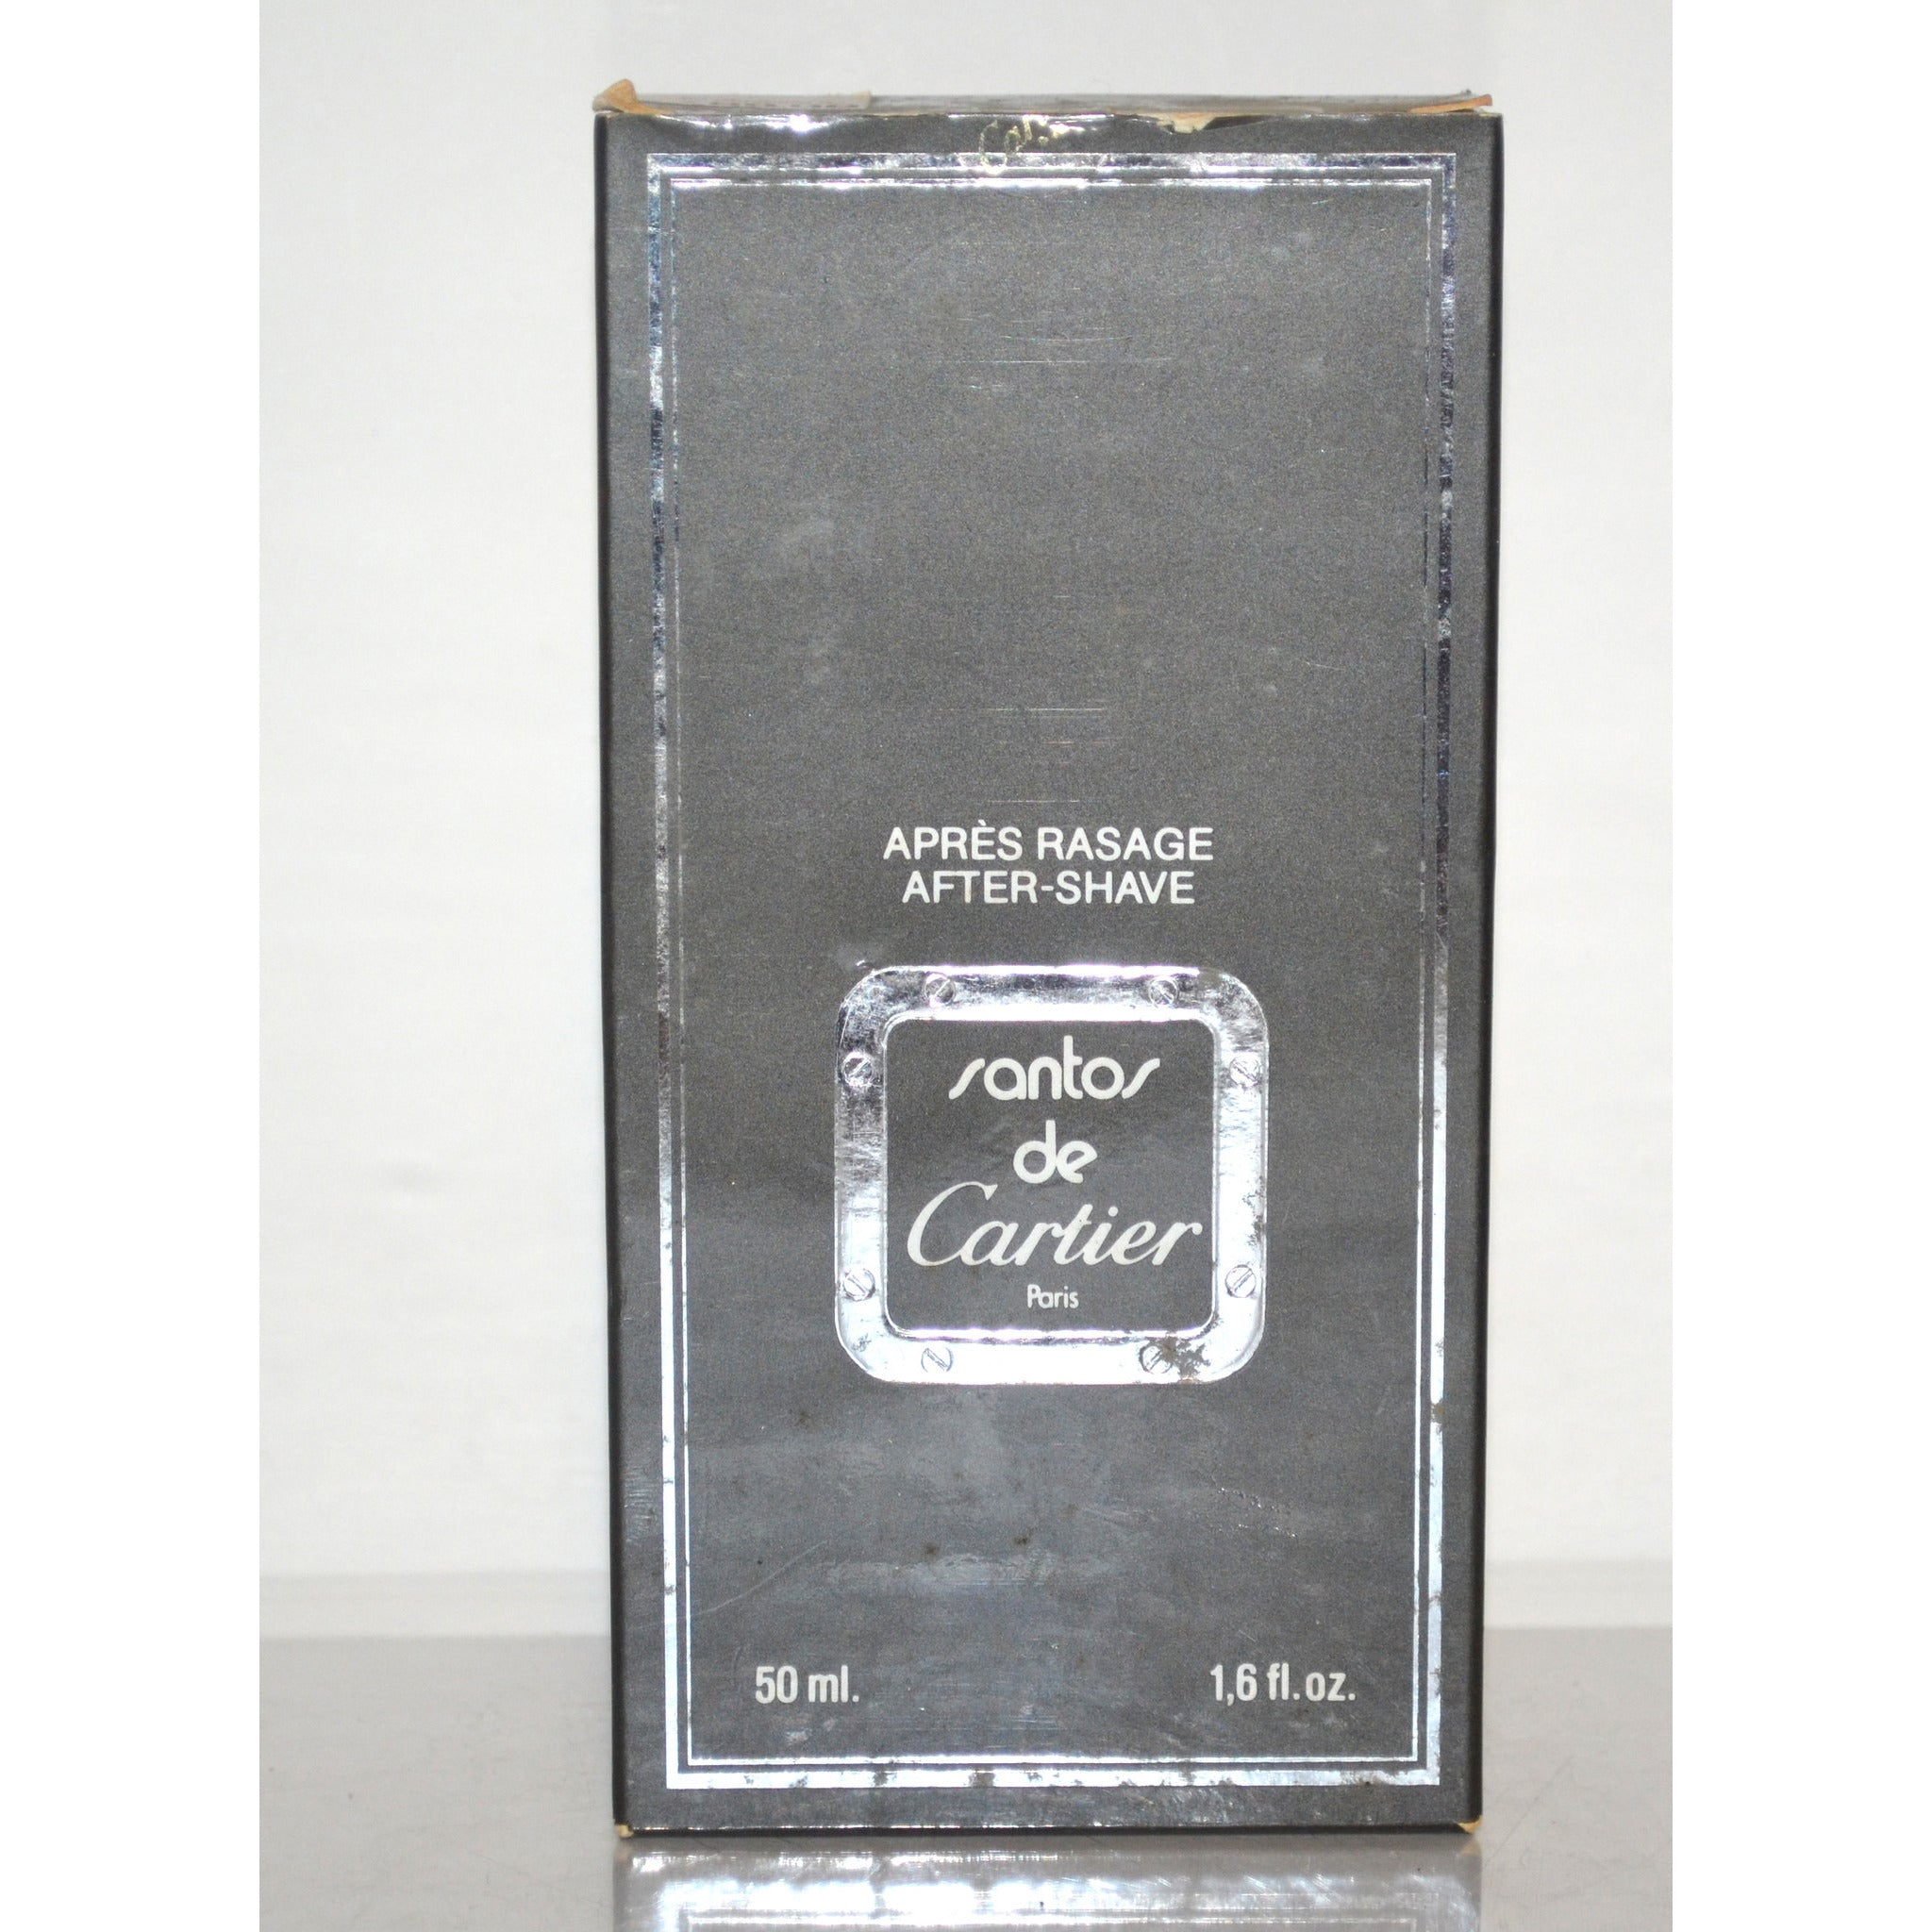 Original Santos de Cartier After Shave